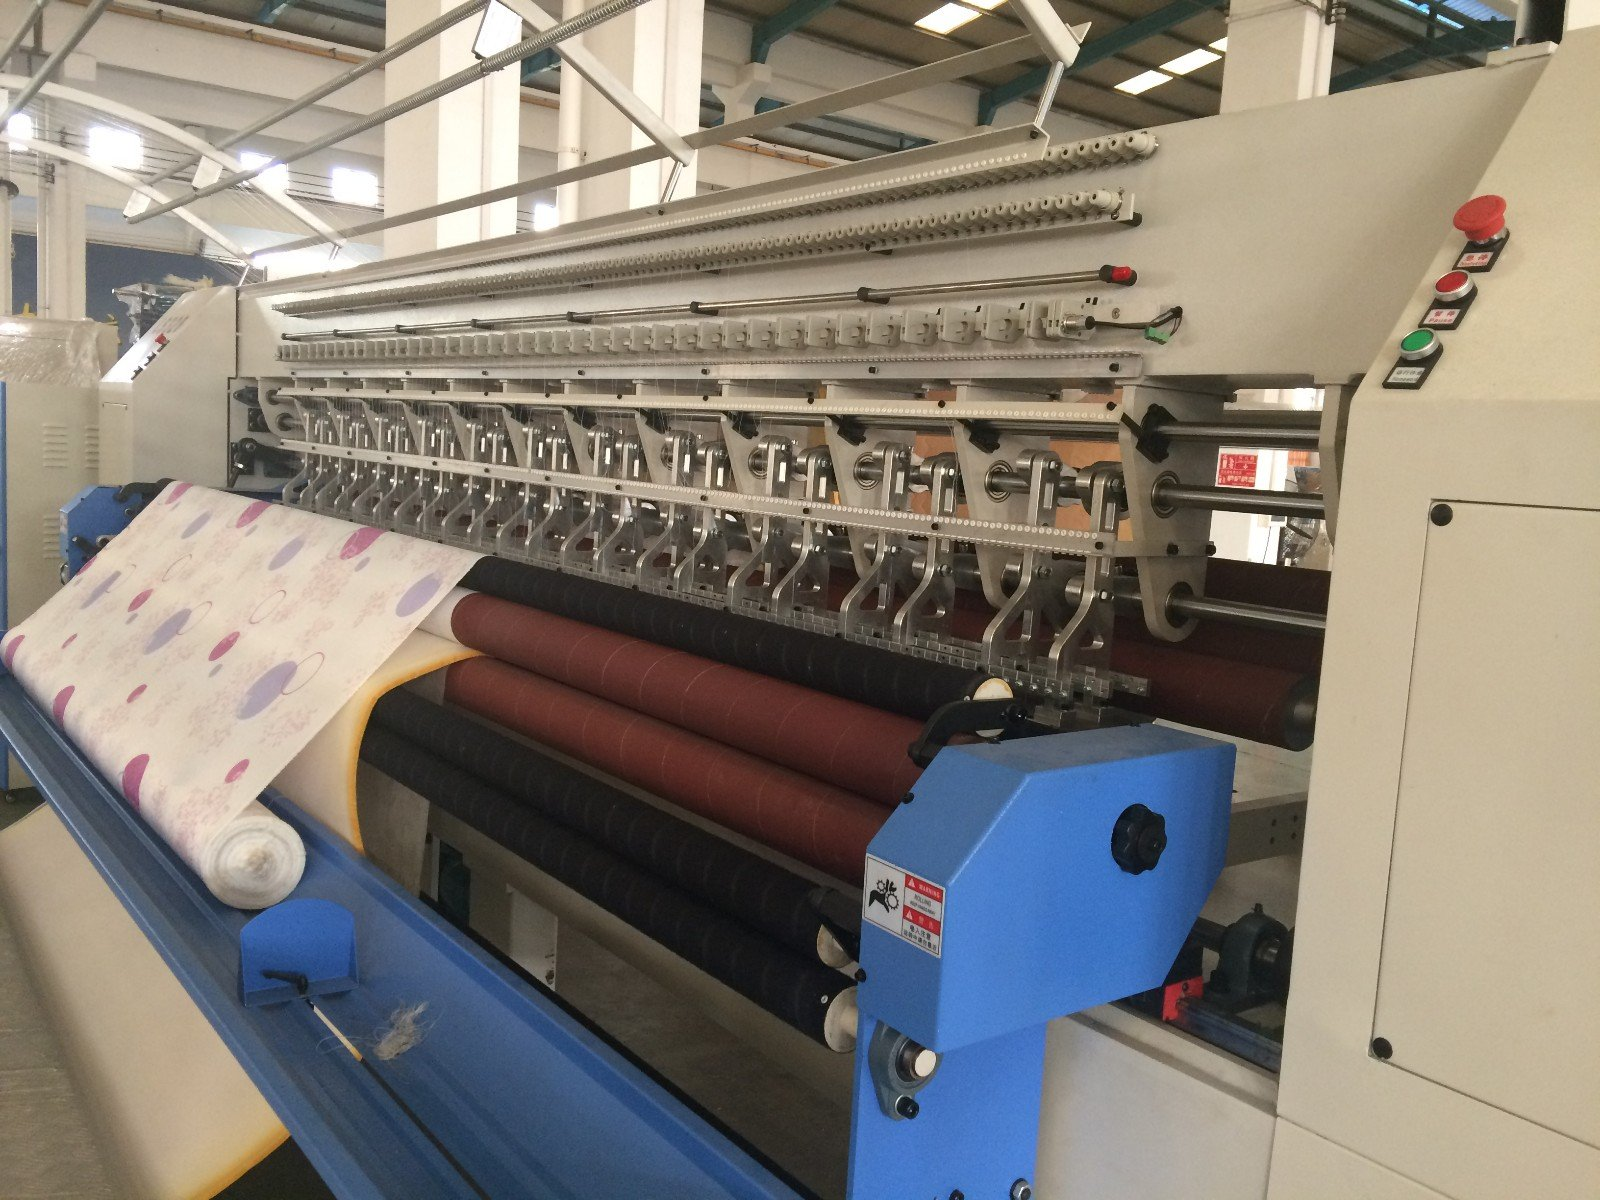 Custom singleneedle quilting machine for mattress quilting quilting machine for mattress price